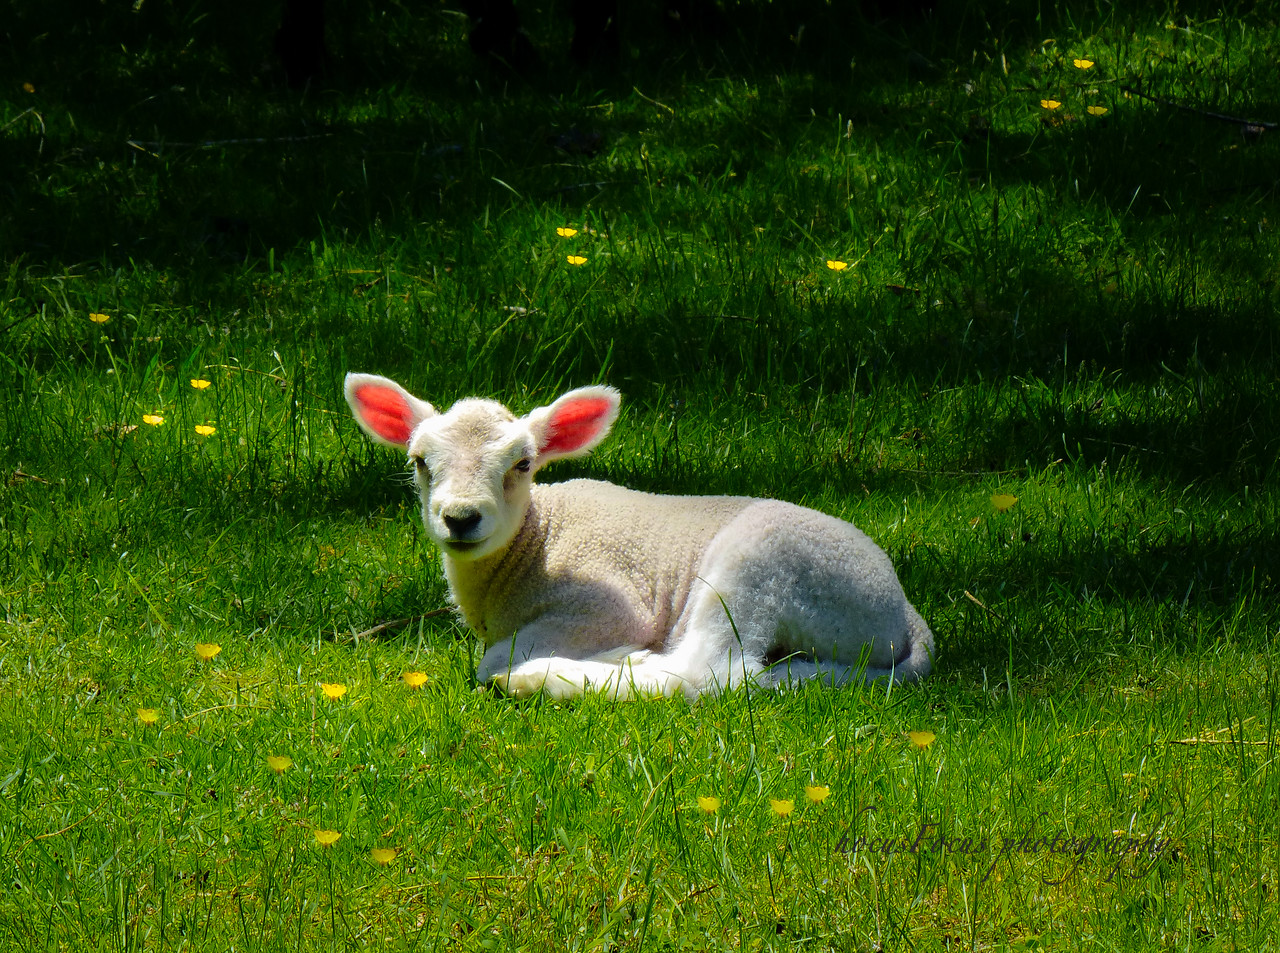 Sheepdog Junction<br /> Middleboro, Ma<br /> <br /> It was shearing day at Sheepdog Junction and this little 5 day old lamb was motherless....All alone in the pasture until mom was done being shorn. The lamb cried incessantly in her absence. It would wander around the pasture and just lay down to sleep for about 3 minutes and then struggle with its new legs to get up again. Then it would baa it's little head off and then lay down again. This lamb was separated off from the rest of sheep and lambs because it's so young and could've easily been injured in the chaotic holding pen.<br />  I've been photographing the goings-on here on this farm for a month or so now. Photographically speaking, I haven't captured anything monumental but, journalistically I've got some interesting stuff. The purpose of the sheep is so that the sheep herding dogs have some sheep to chase. The owner teaches handlers and their dogs to herd by using commands only, either whistle or voice. It's amazing to watch.